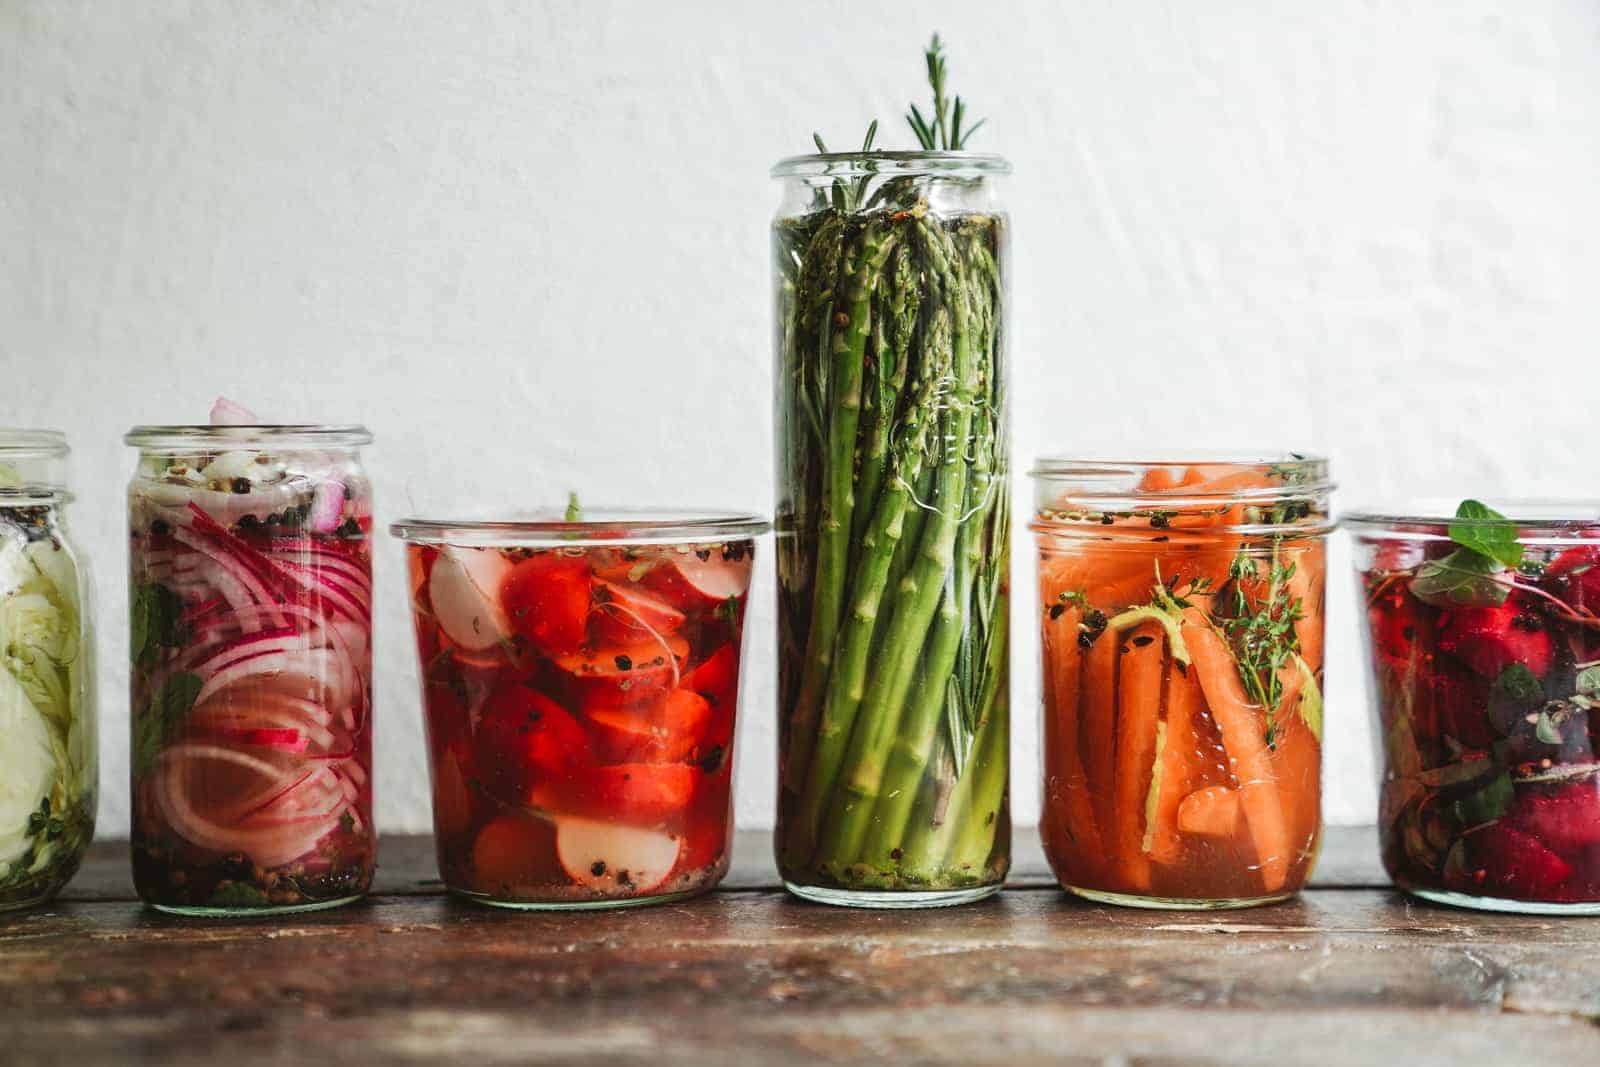 Close-up of pickled vegetables to demonstrate Maria's top food photography tips.